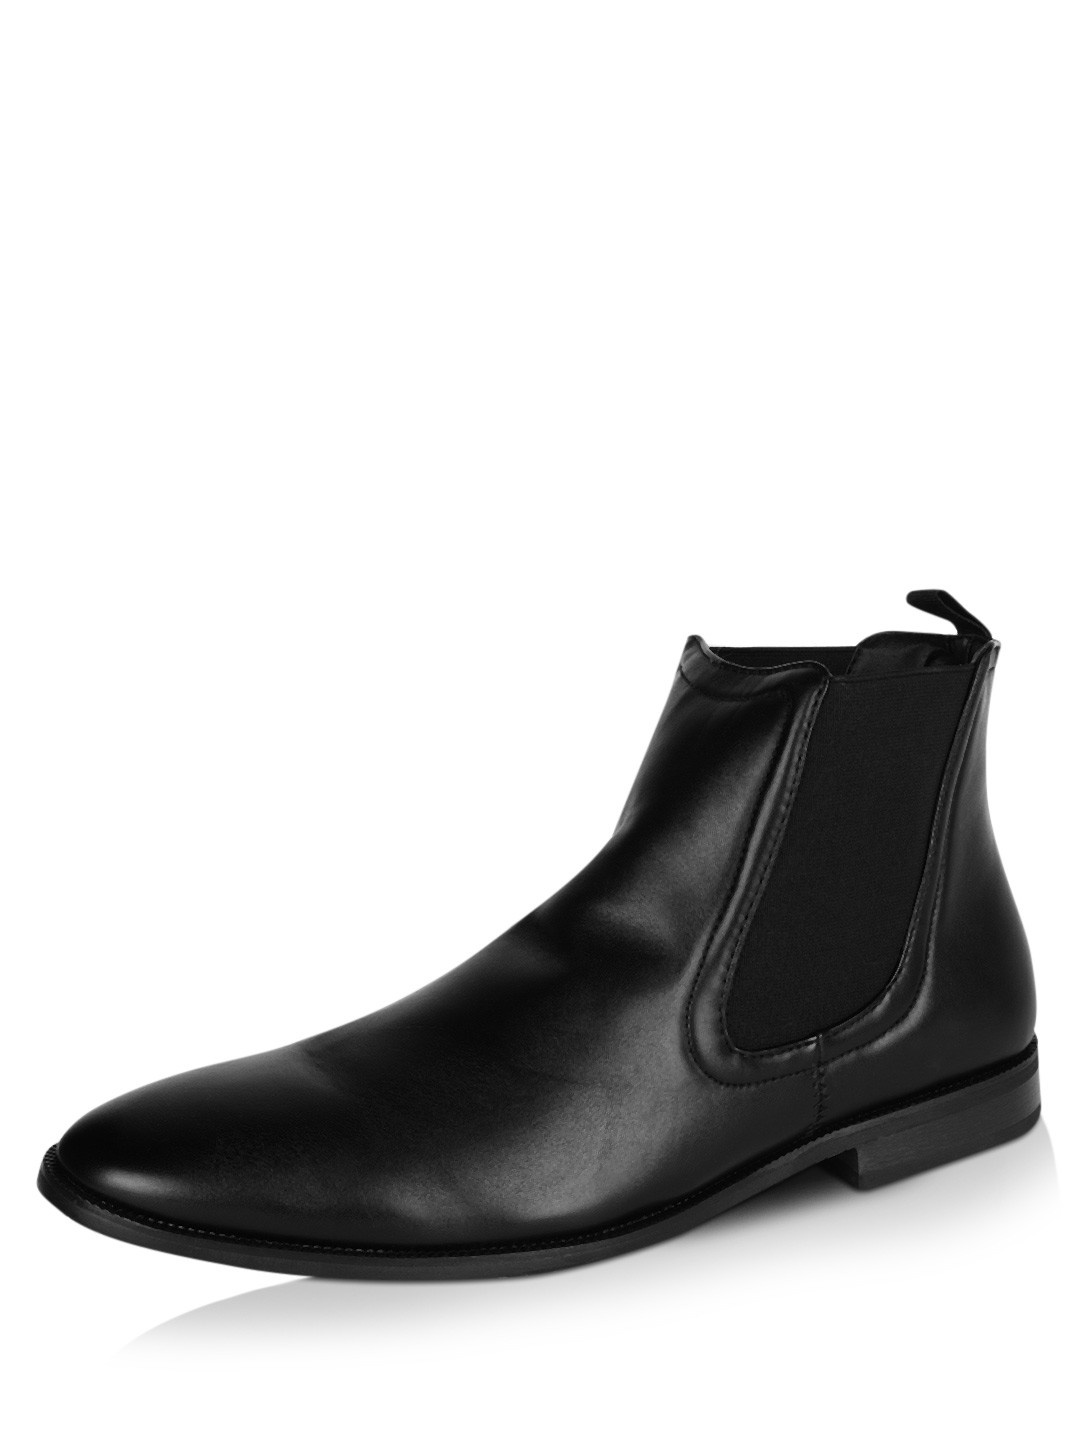 buy new look oliver chelsea boots for men men 39 s black boots online. Black Bedroom Furniture Sets. Home Design Ideas